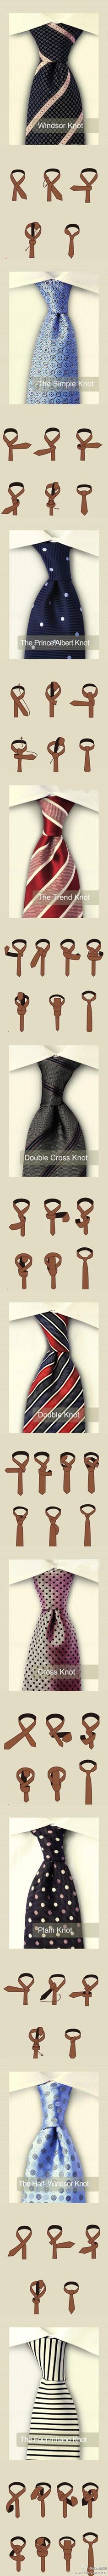 Different ways to tie ties.